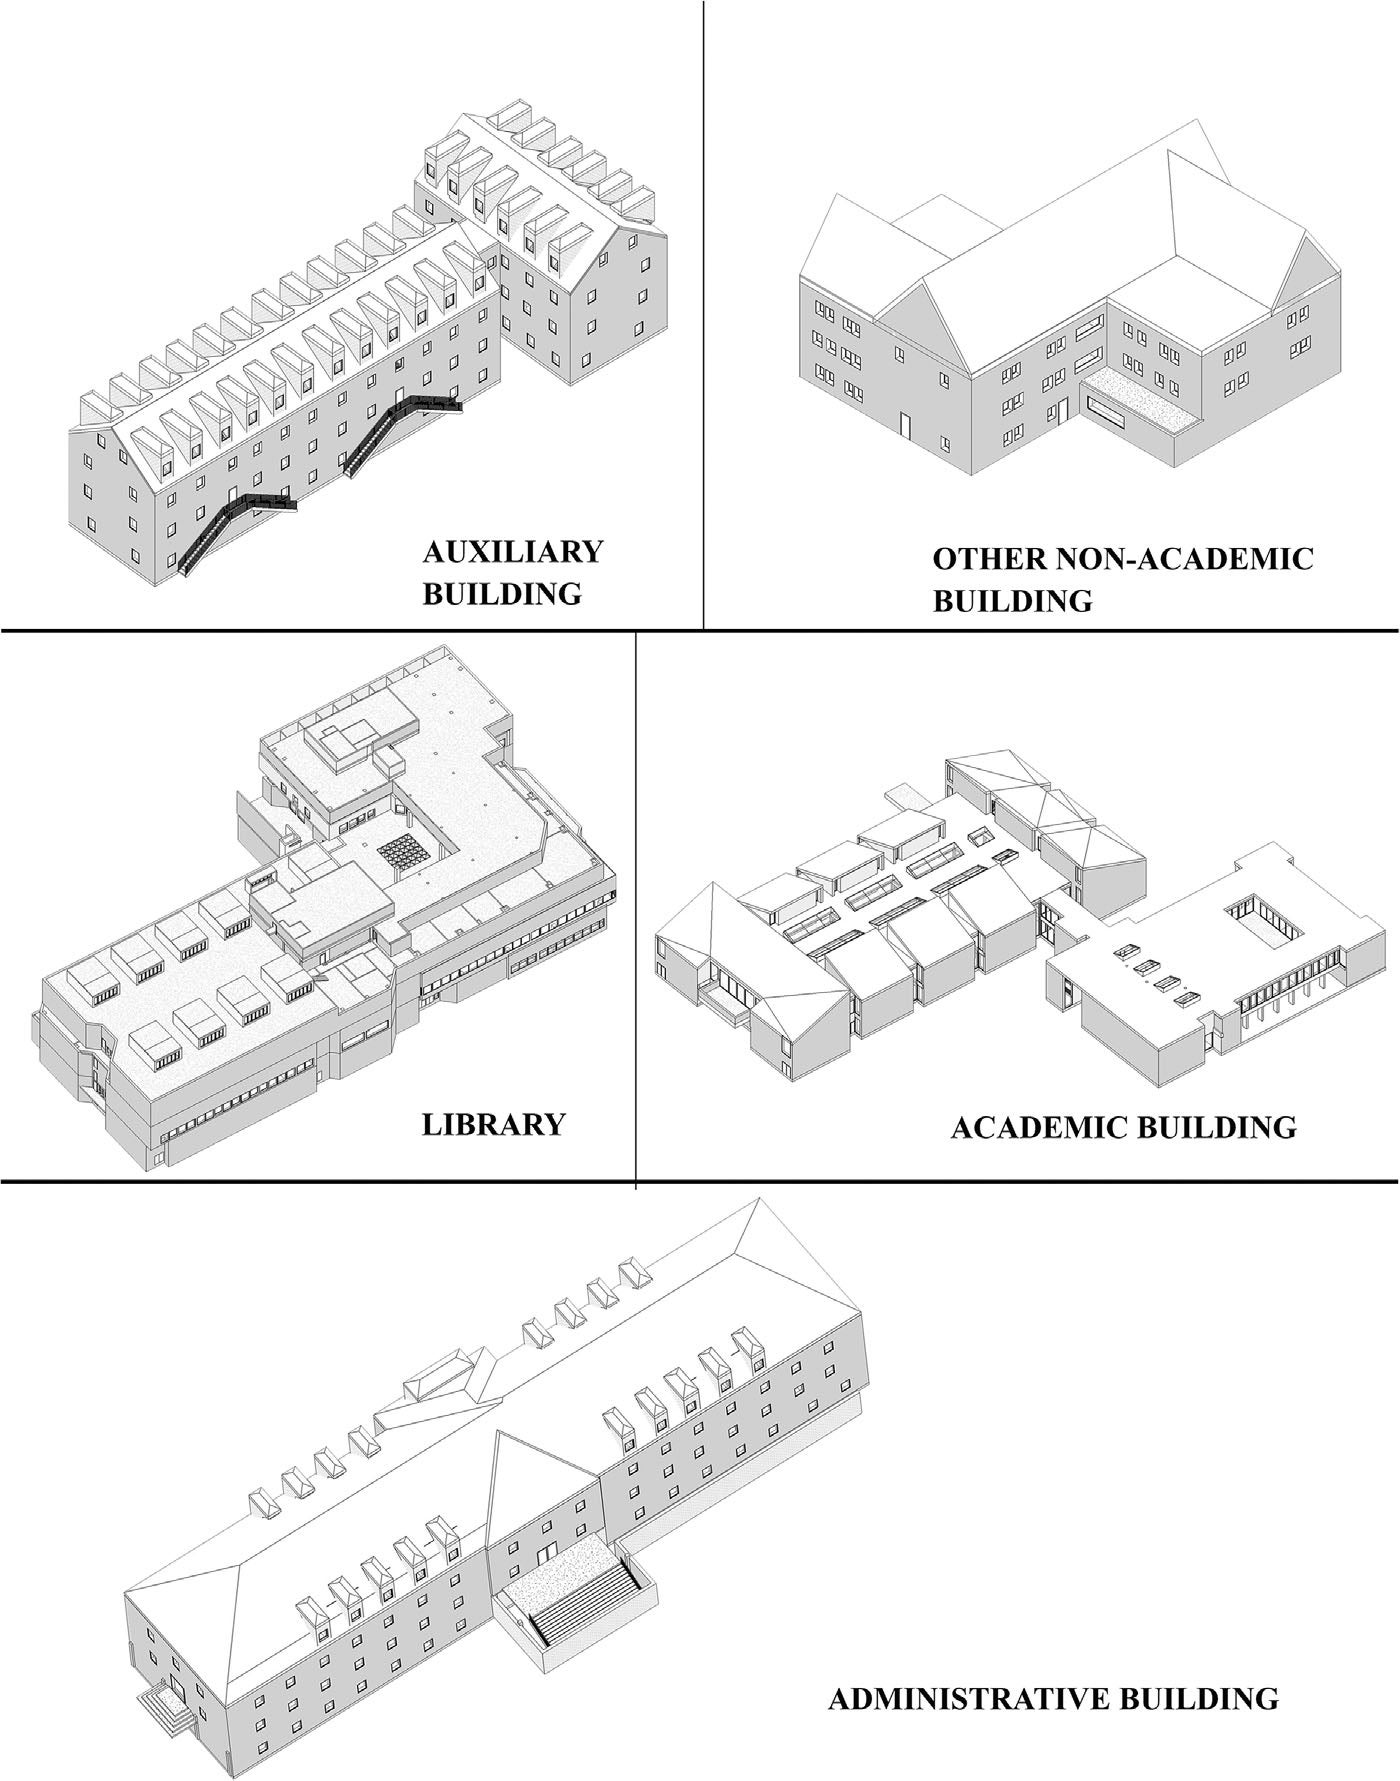 Prototype buildings (Autodesk Revit models) from original construction documents archived by the campus facility management office.